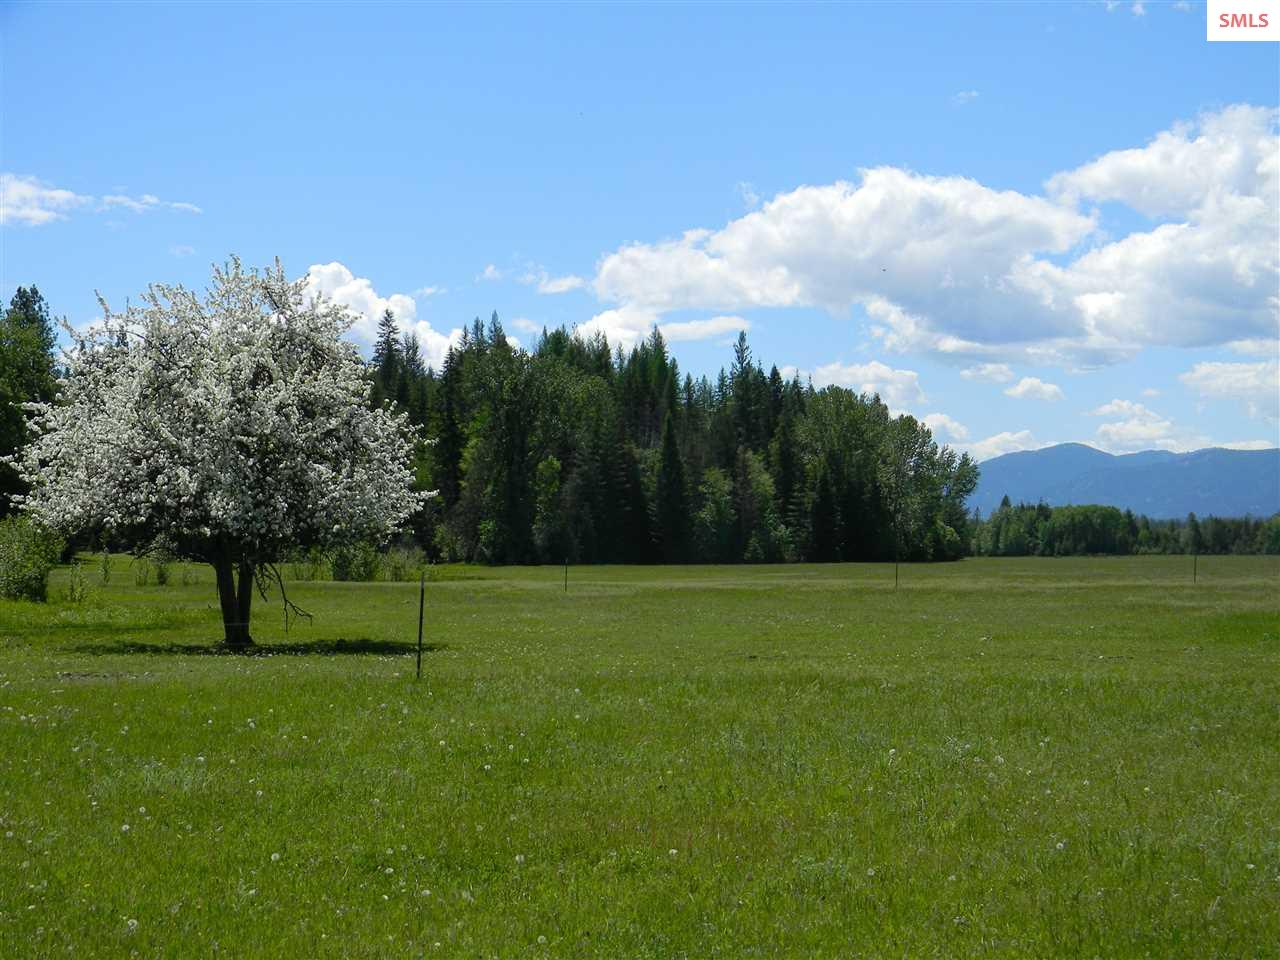 Land for Sale at 1768 Grouse Creek 1768 Grouse Creek Sandpoint, Idaho 83862 United States